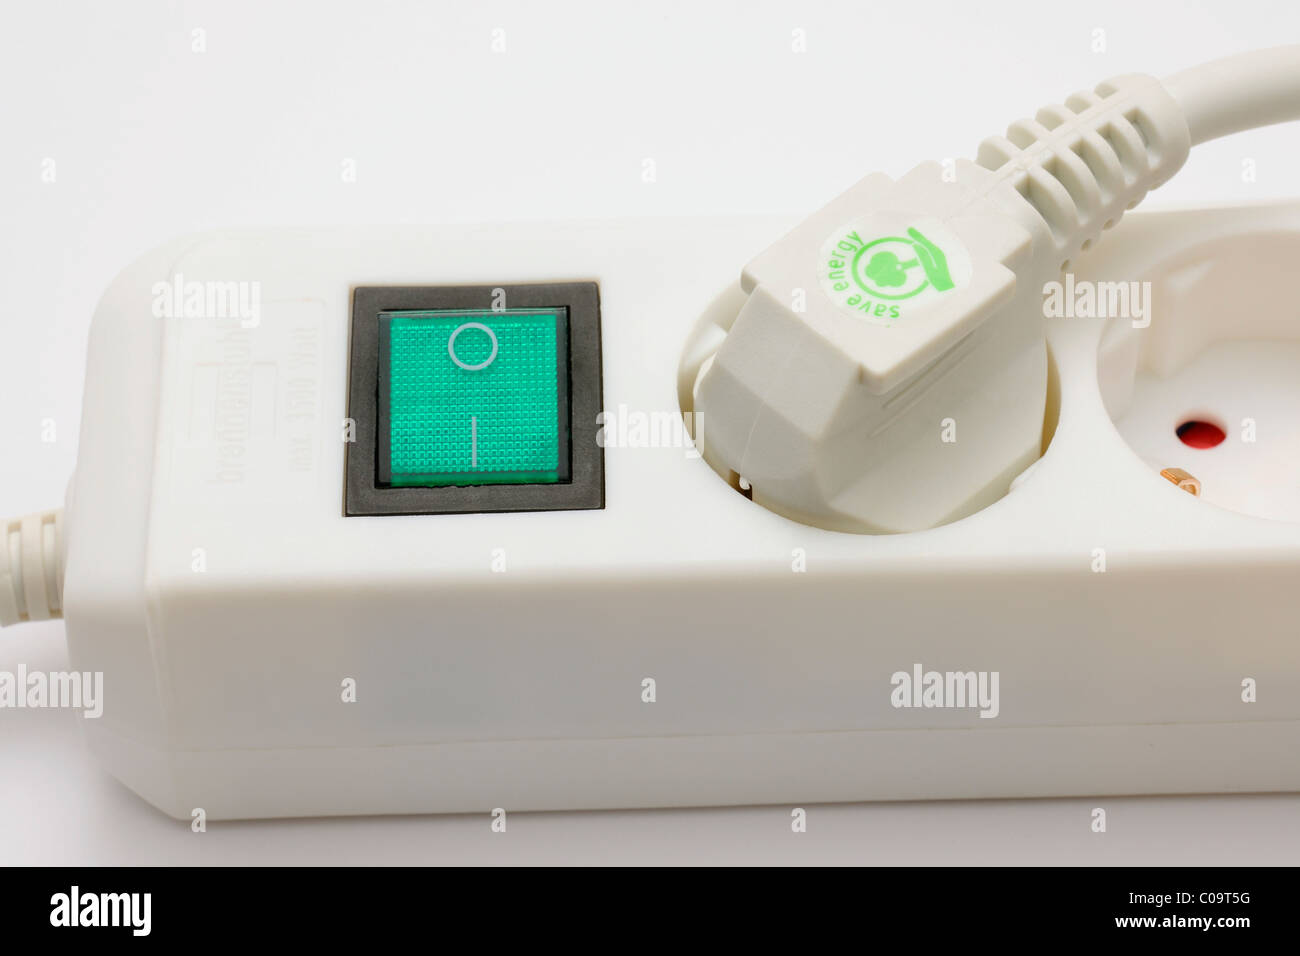 Socket outlet with plug, safe energy - Stock Image